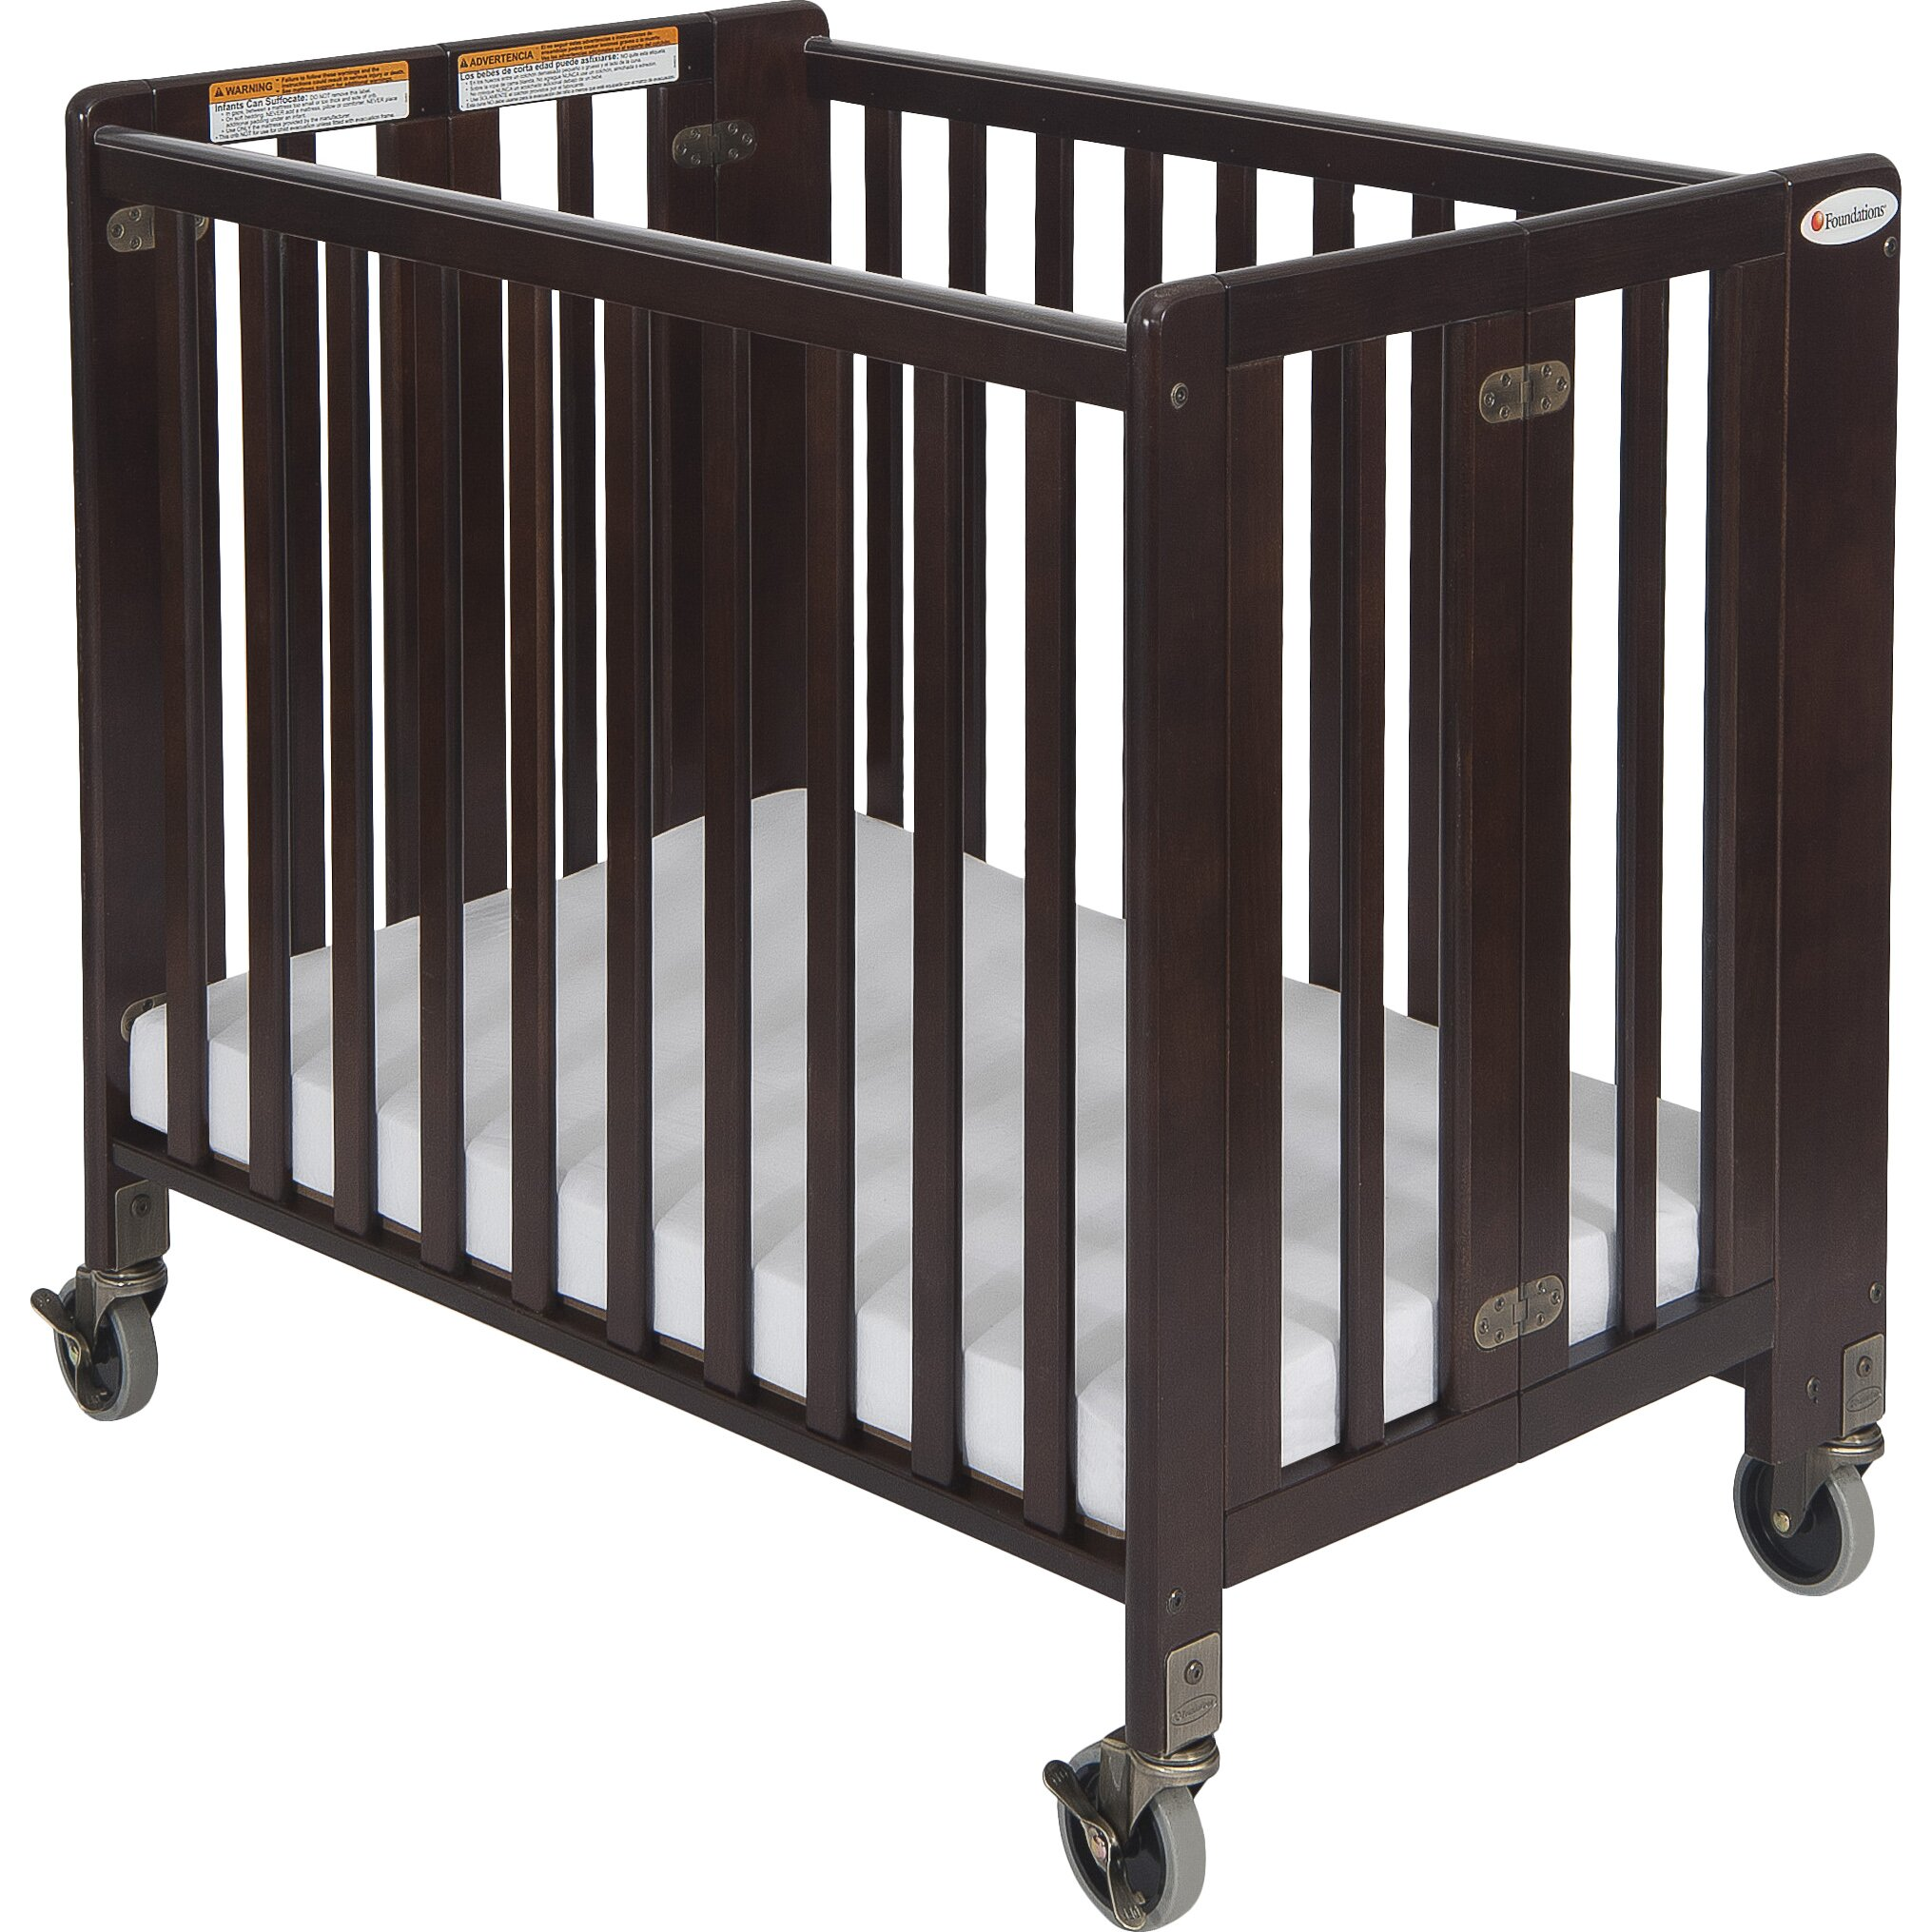 Crib for sale charleston sc - Foundations Hideaway Storable Wood Convertible Crib With Mattress